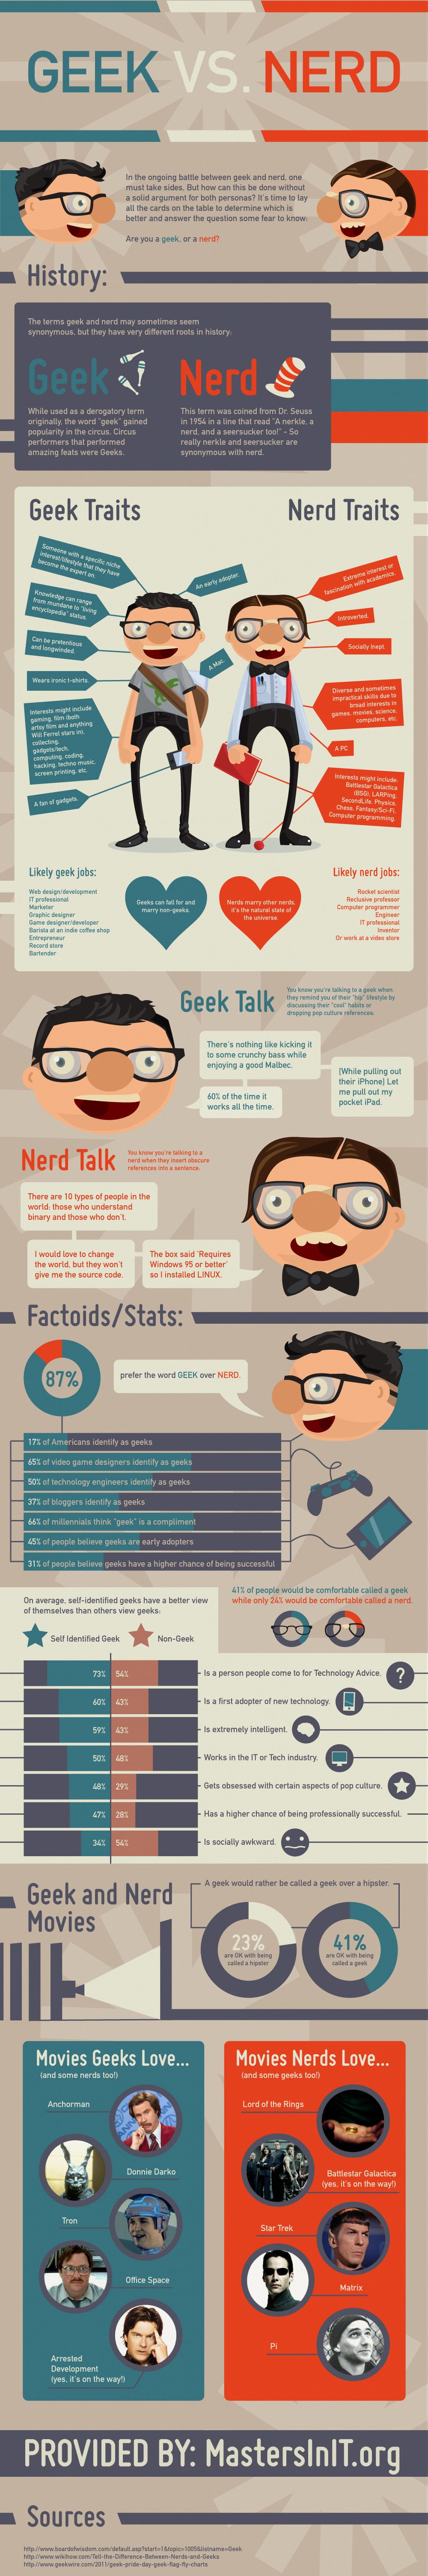 Geek vs. Nerd. I still think I'm a nerd plus I'm ok with it…